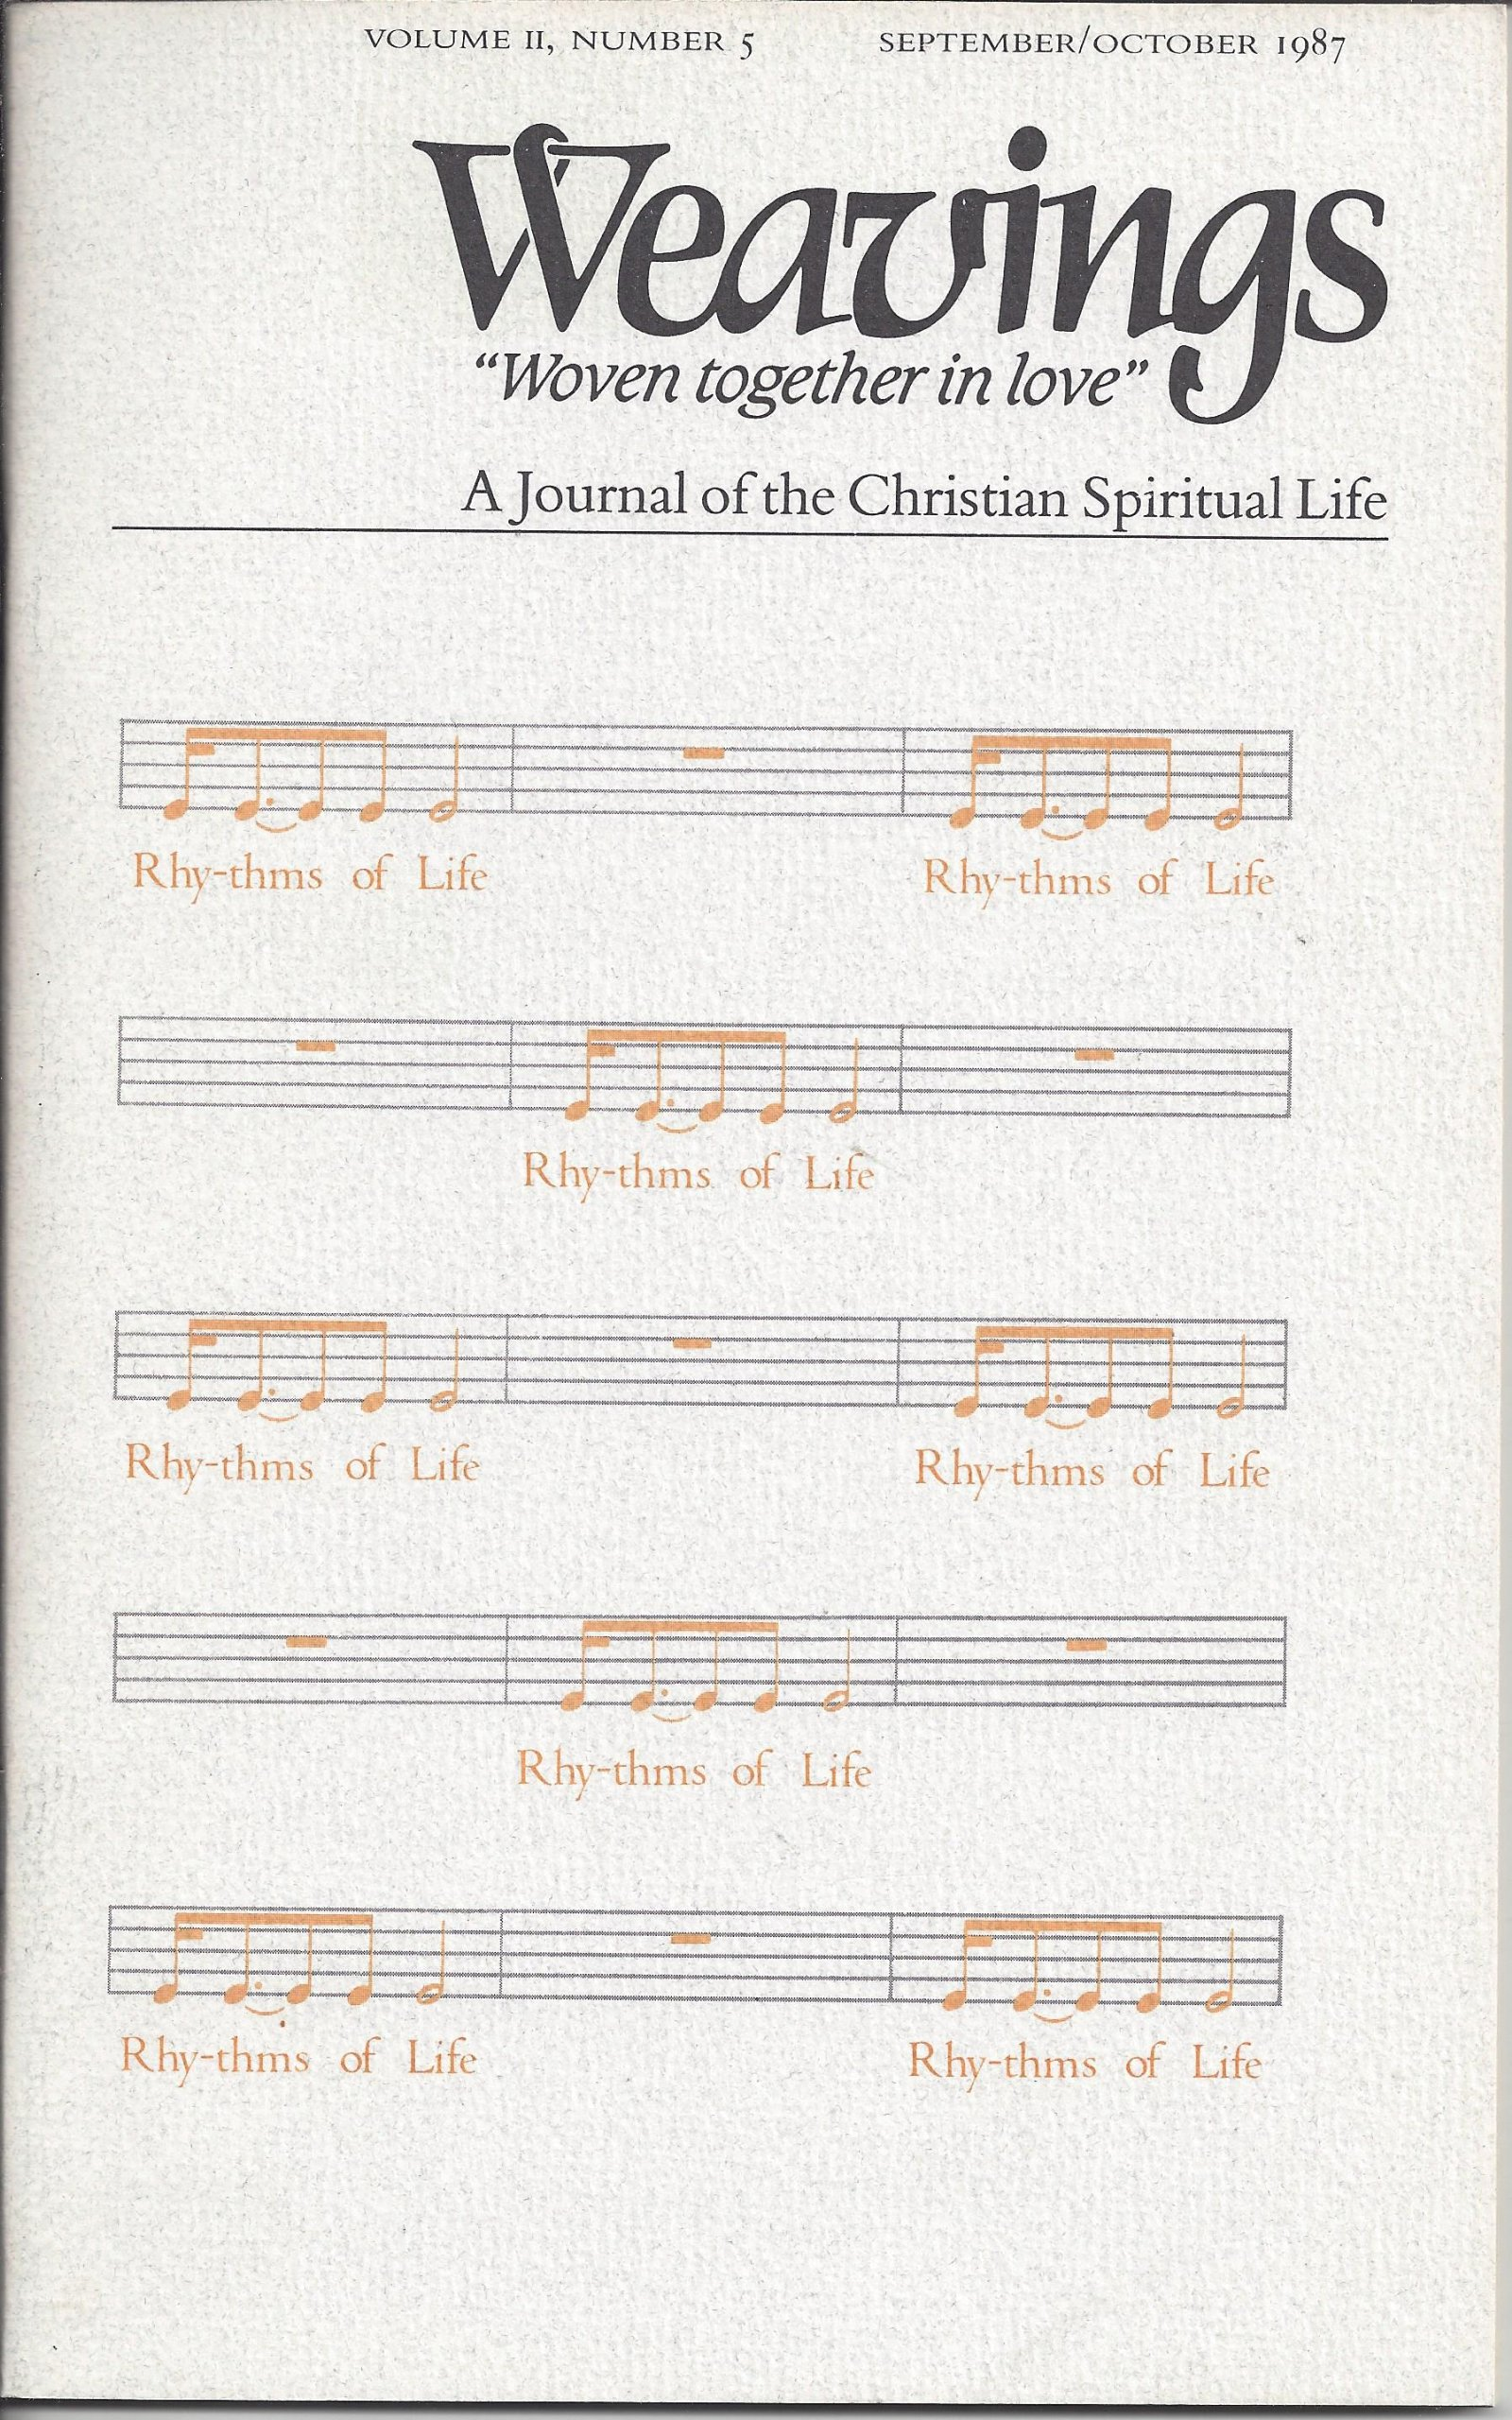 weavings-woven-together-in-love-a-journal-of-the-christian-spiritual-life-volume-ii-number-5-rhy-thyms-of-life-september-october-1987